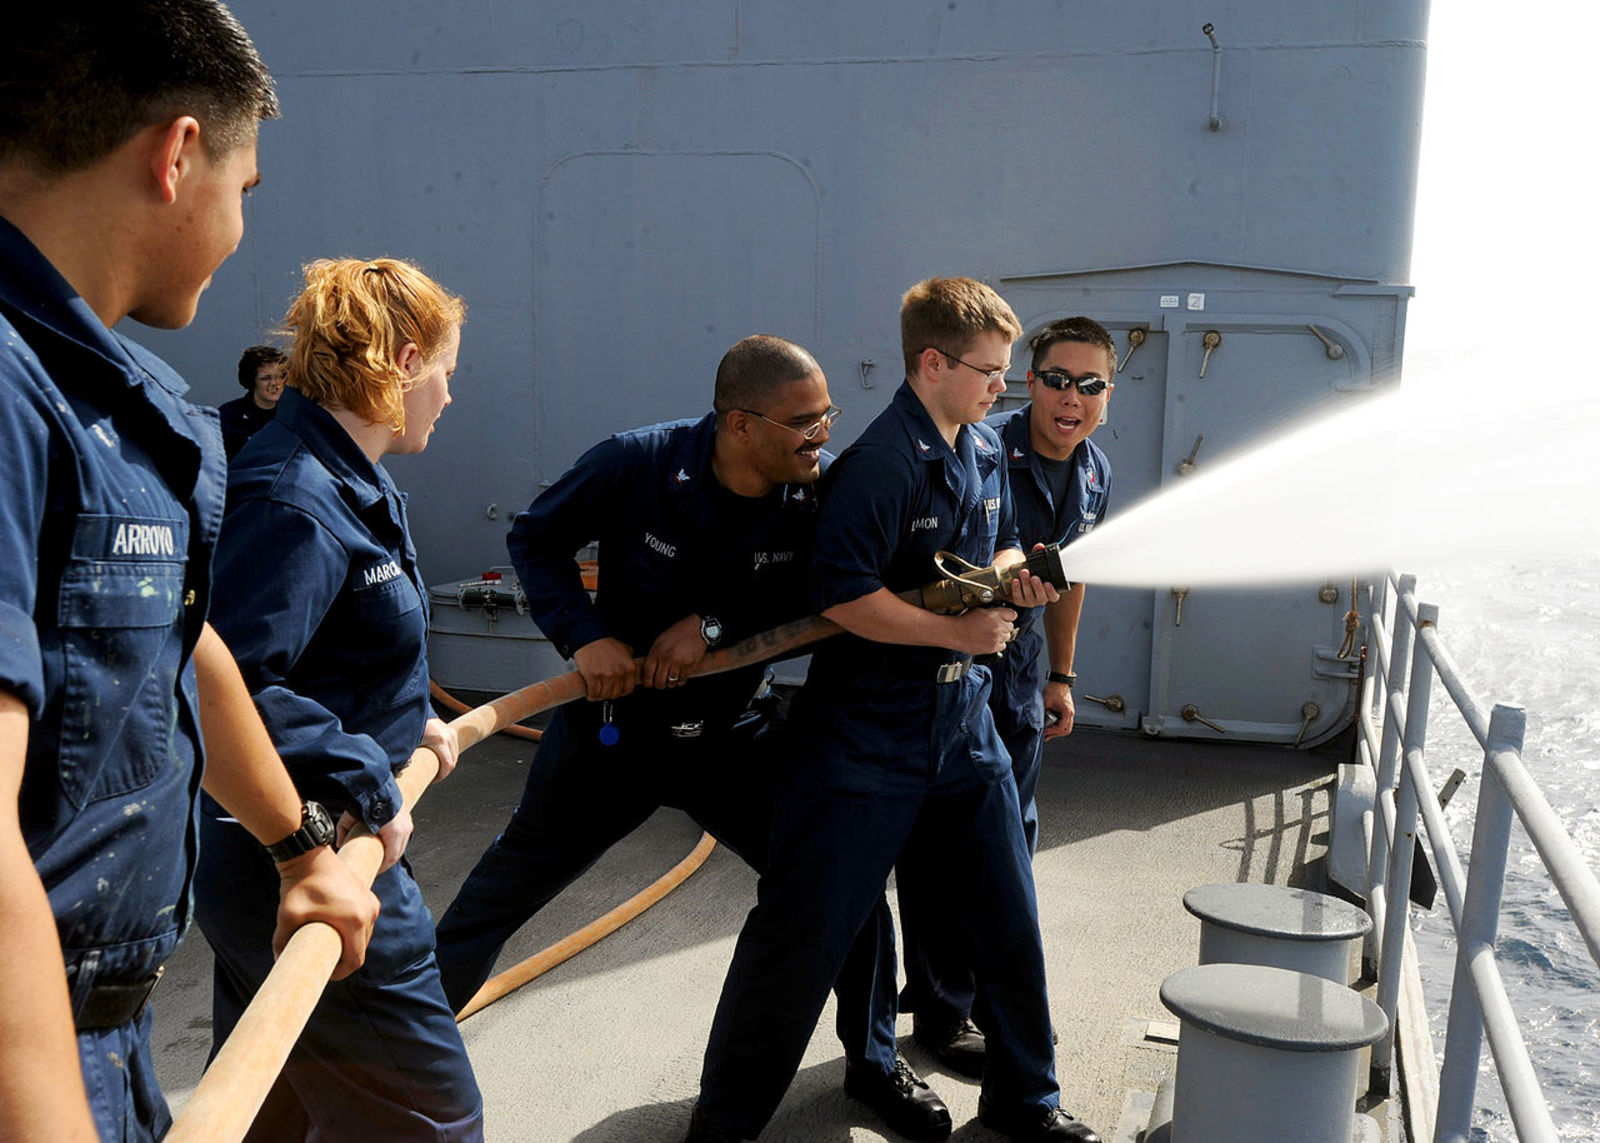 0/illustrations/Flickr_-_Official_U.S._Navy_Imagery_-_Sailors_practice_handling_a_charged_fire_hose_aboard_USS_Leyte_Gulf.jpg